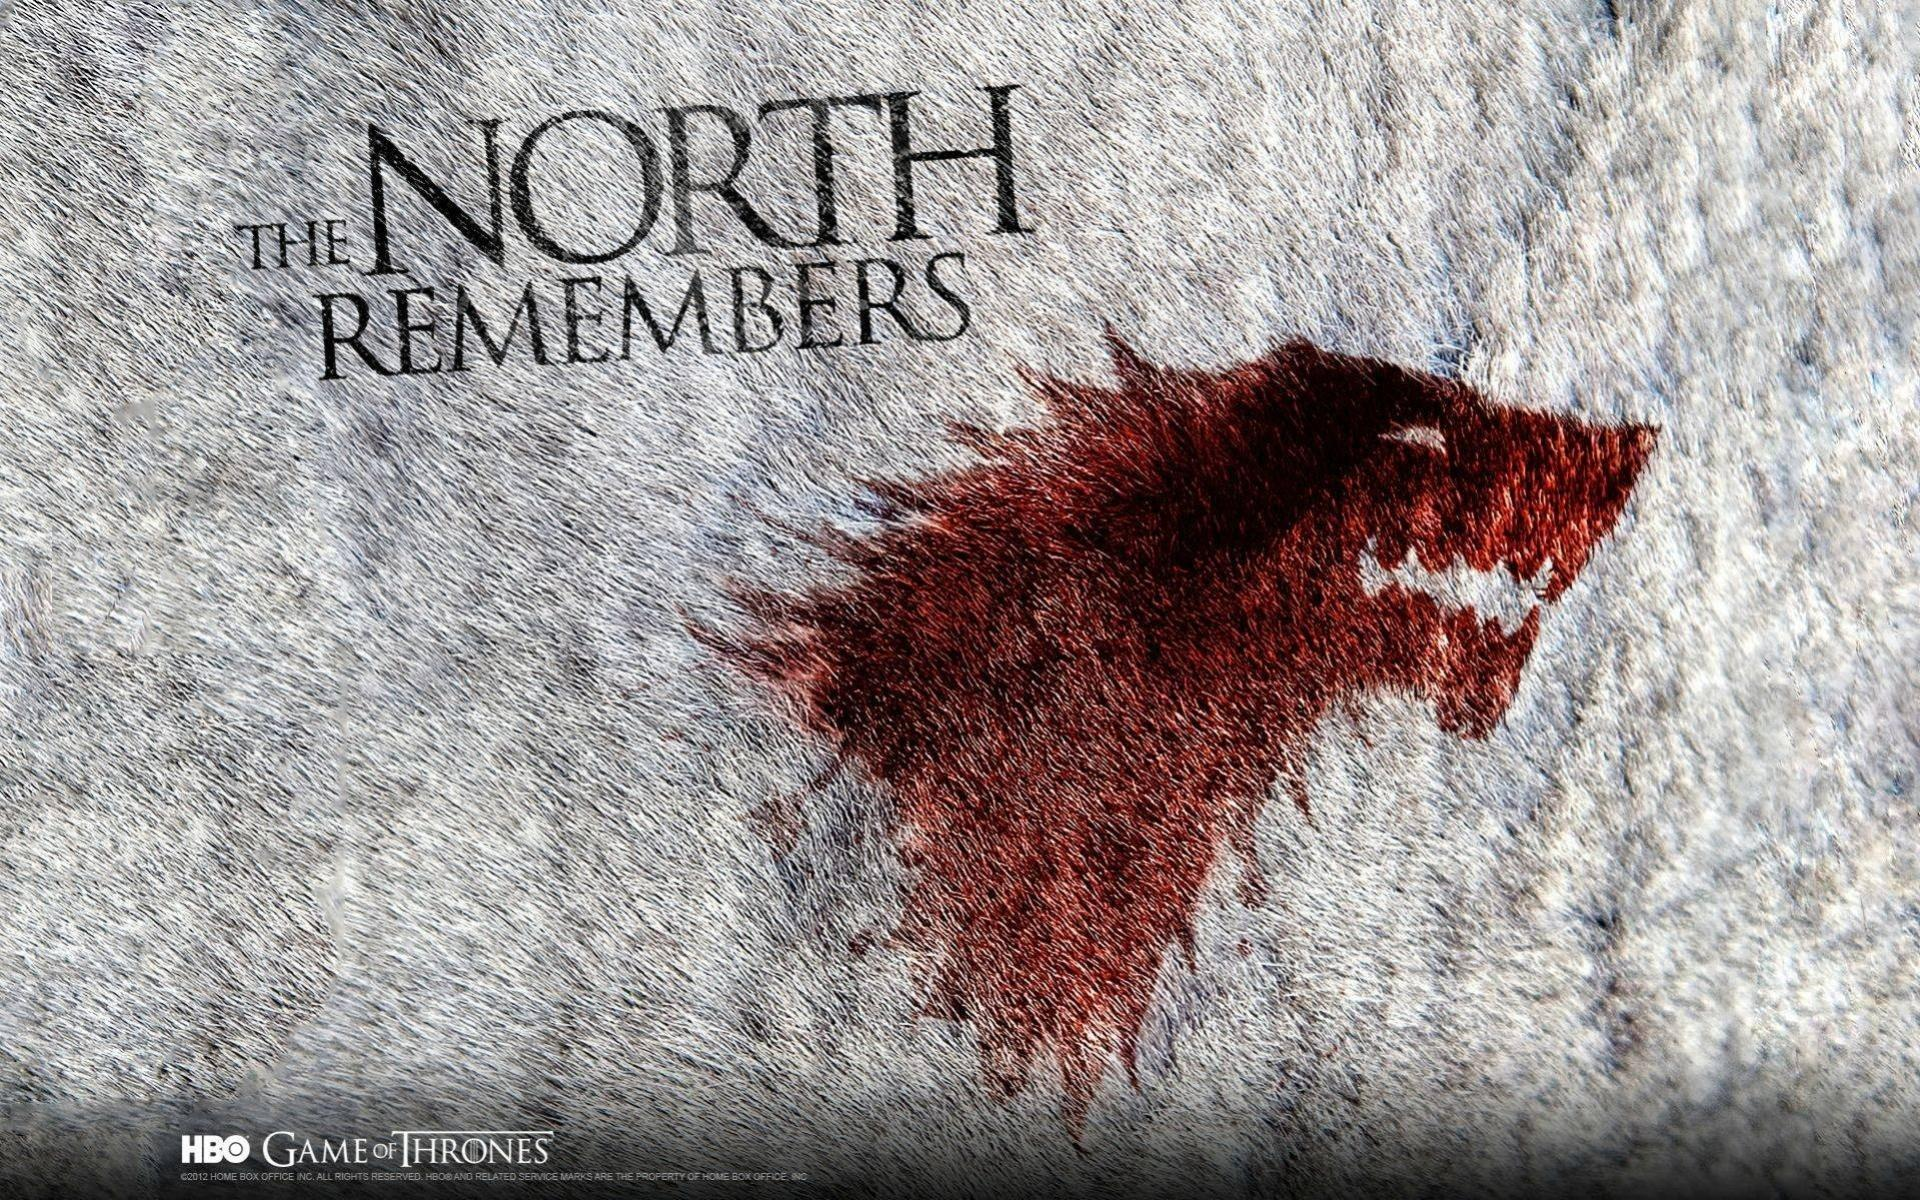 Game Of Thrones wallpapers 1920x1200 desktop backgrounds